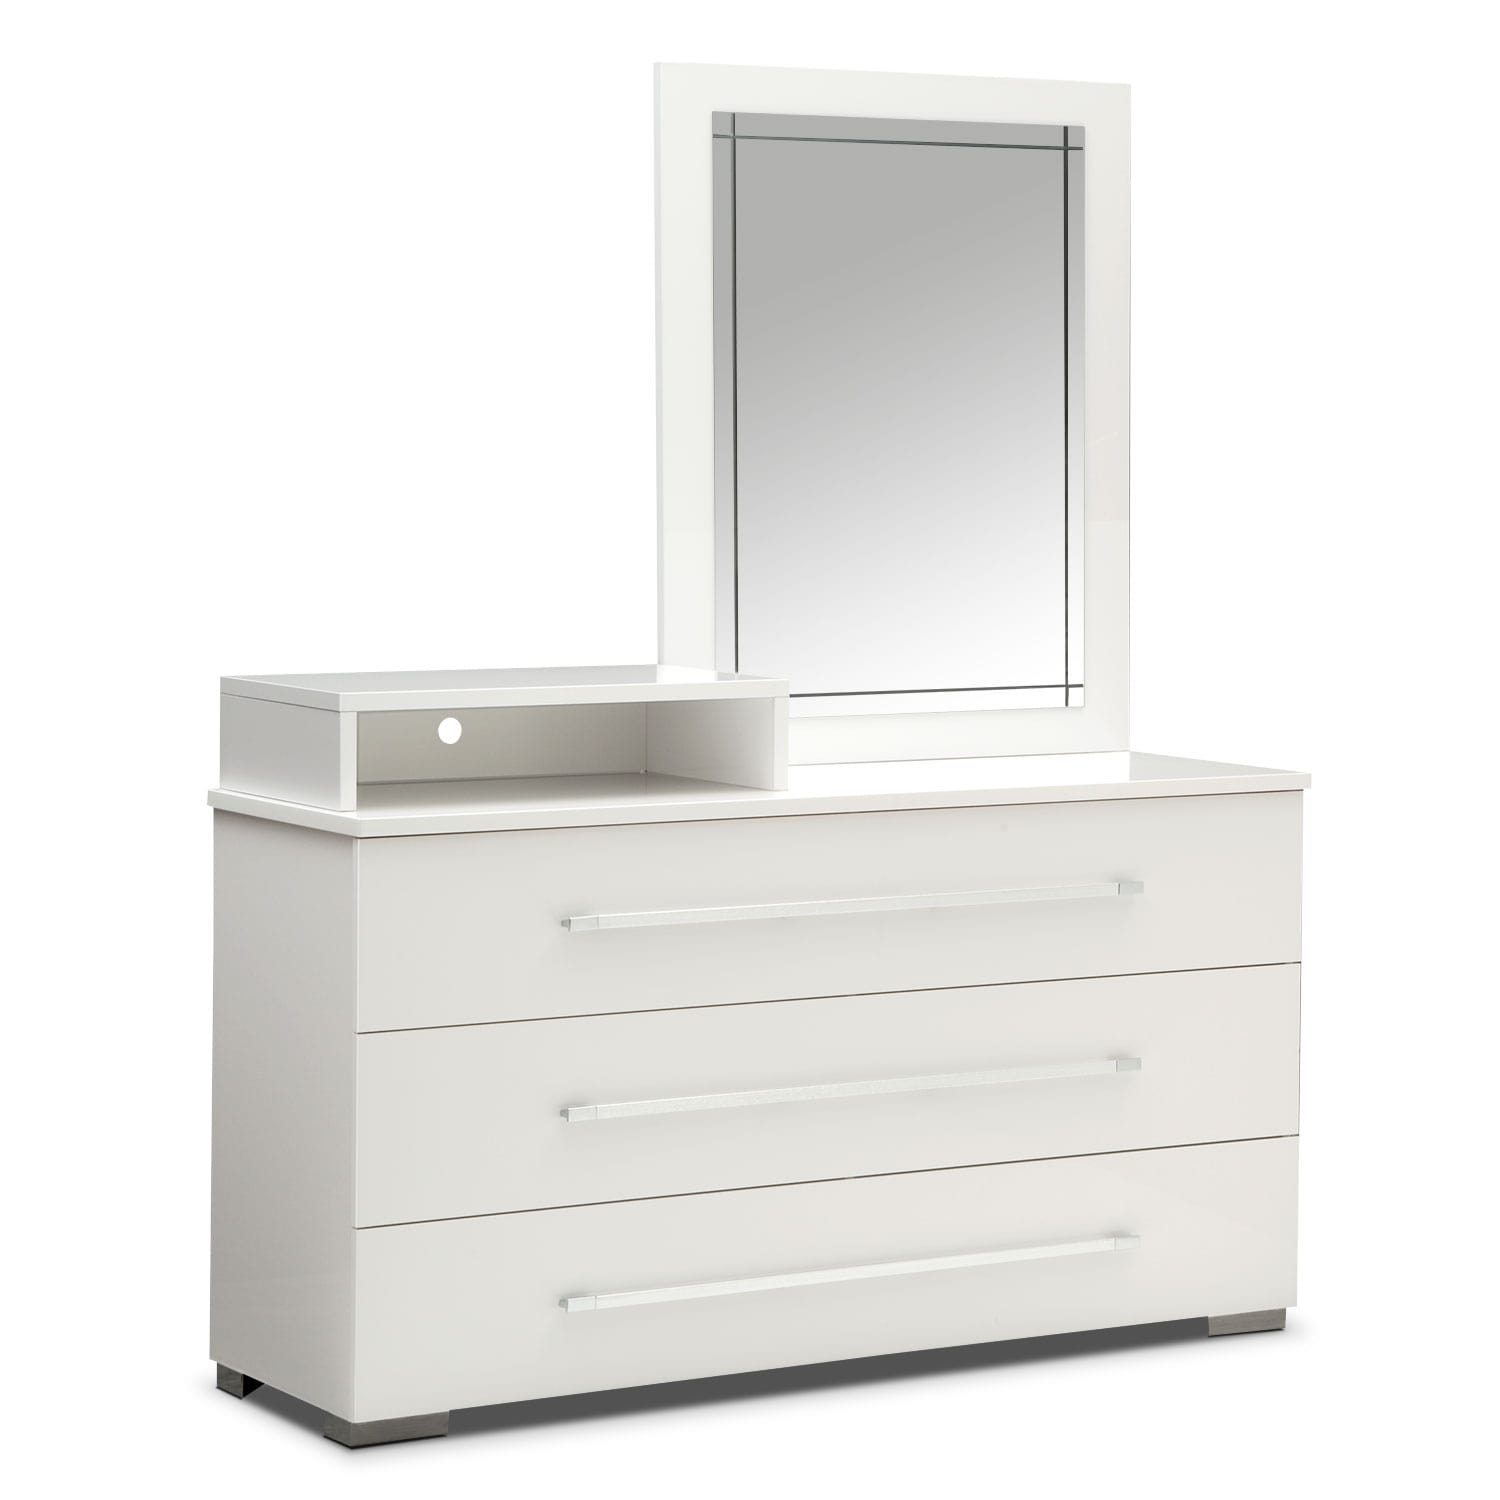 Dimora Media Dresser and Mirror - White